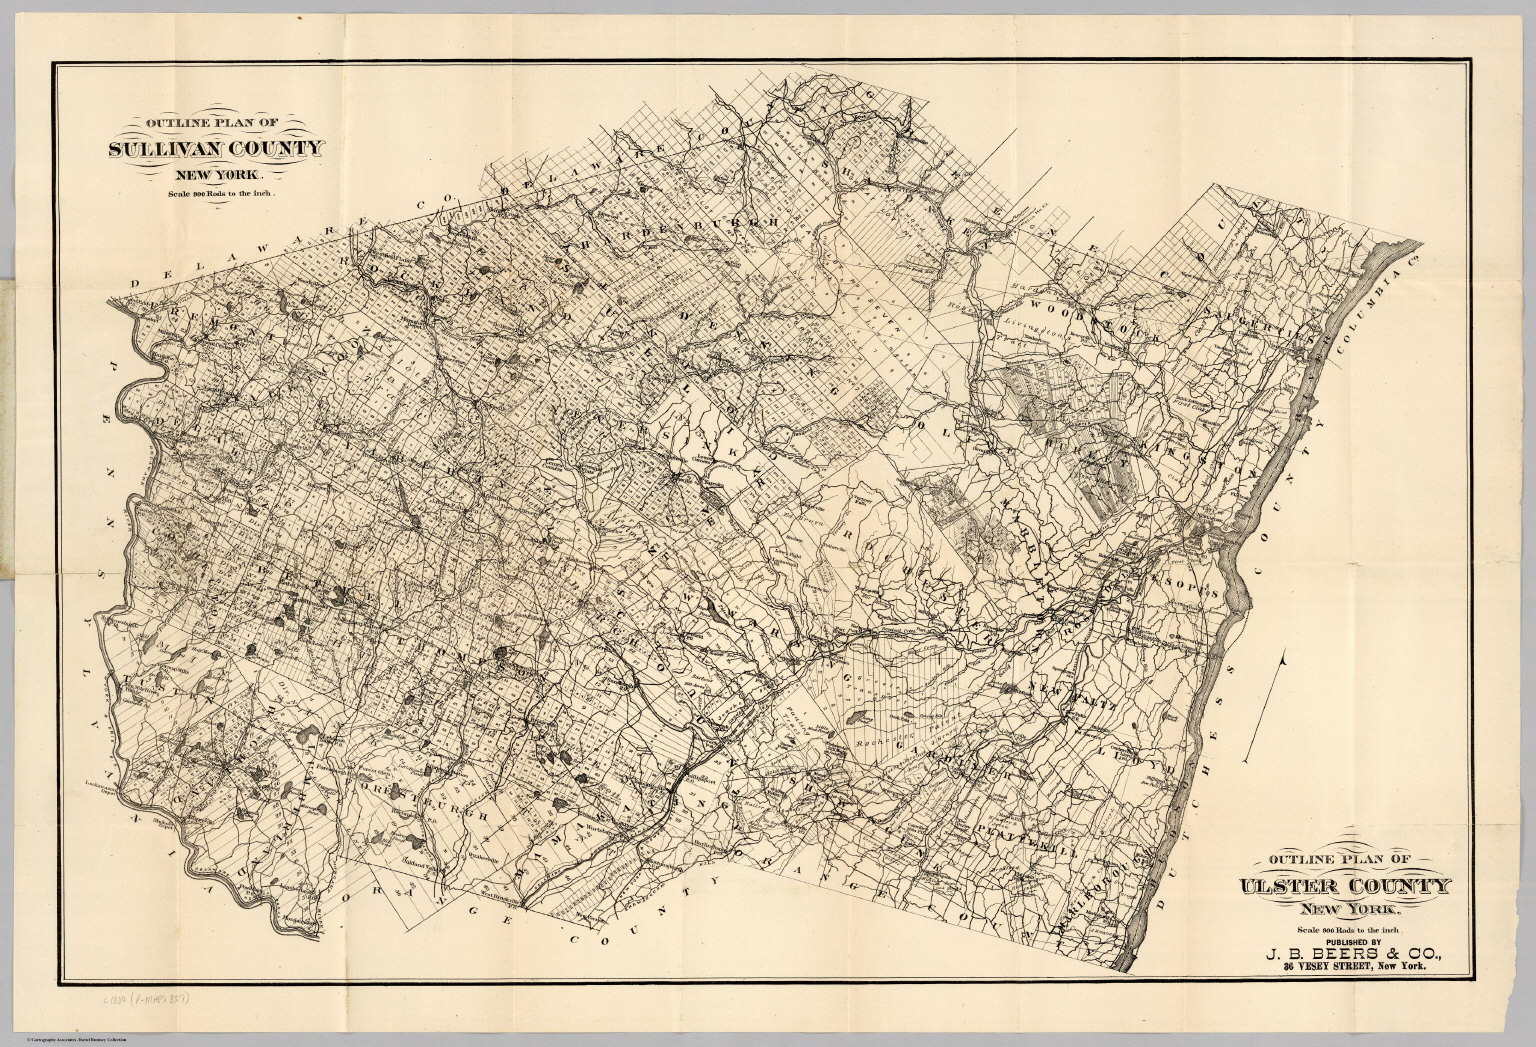 Ulster County New York Map.Sullivan County Ulster County New York David Rumsey Historical